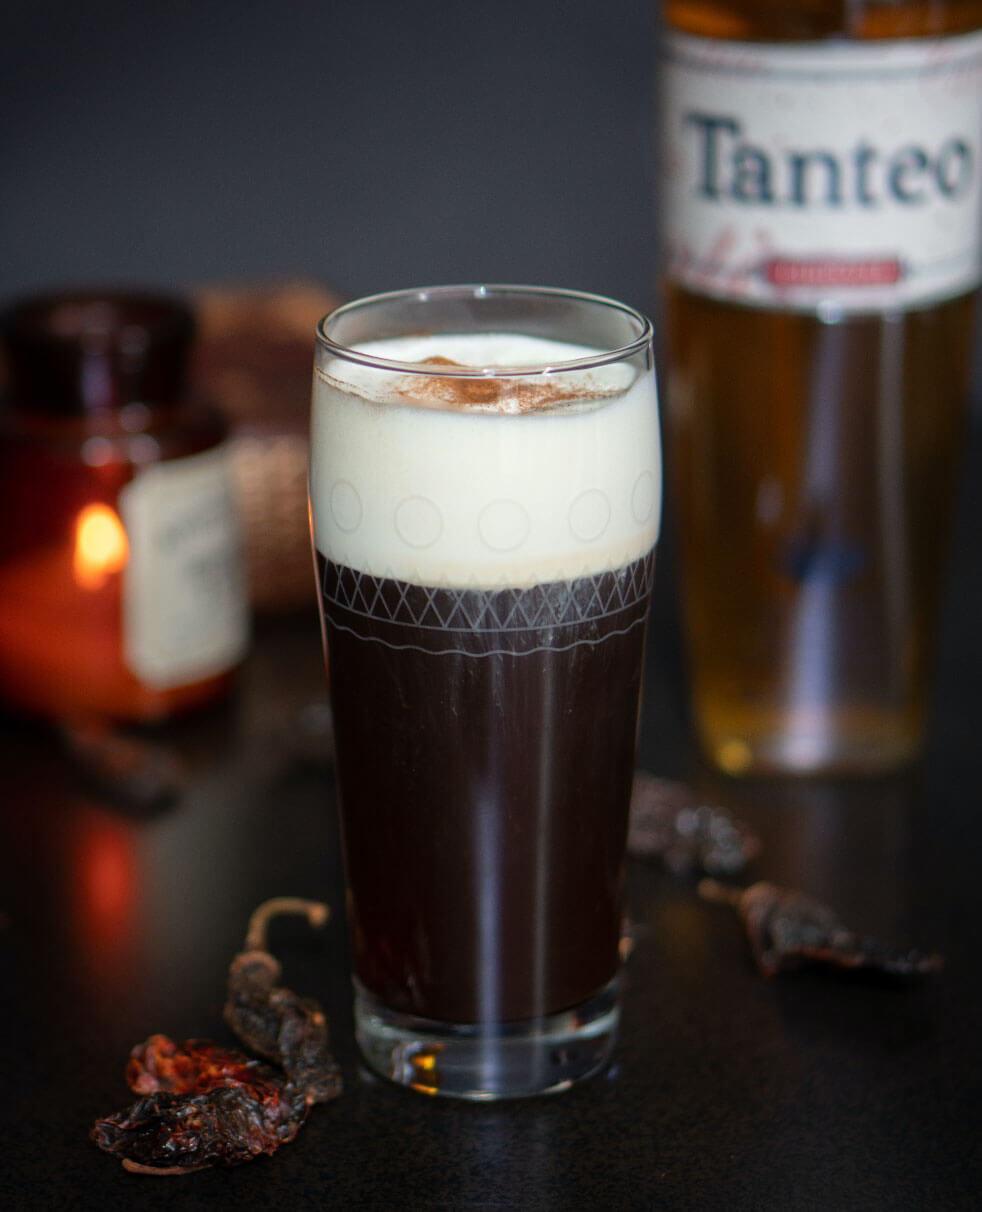 Tanteo Tequila Chipotle Mexican Coffee